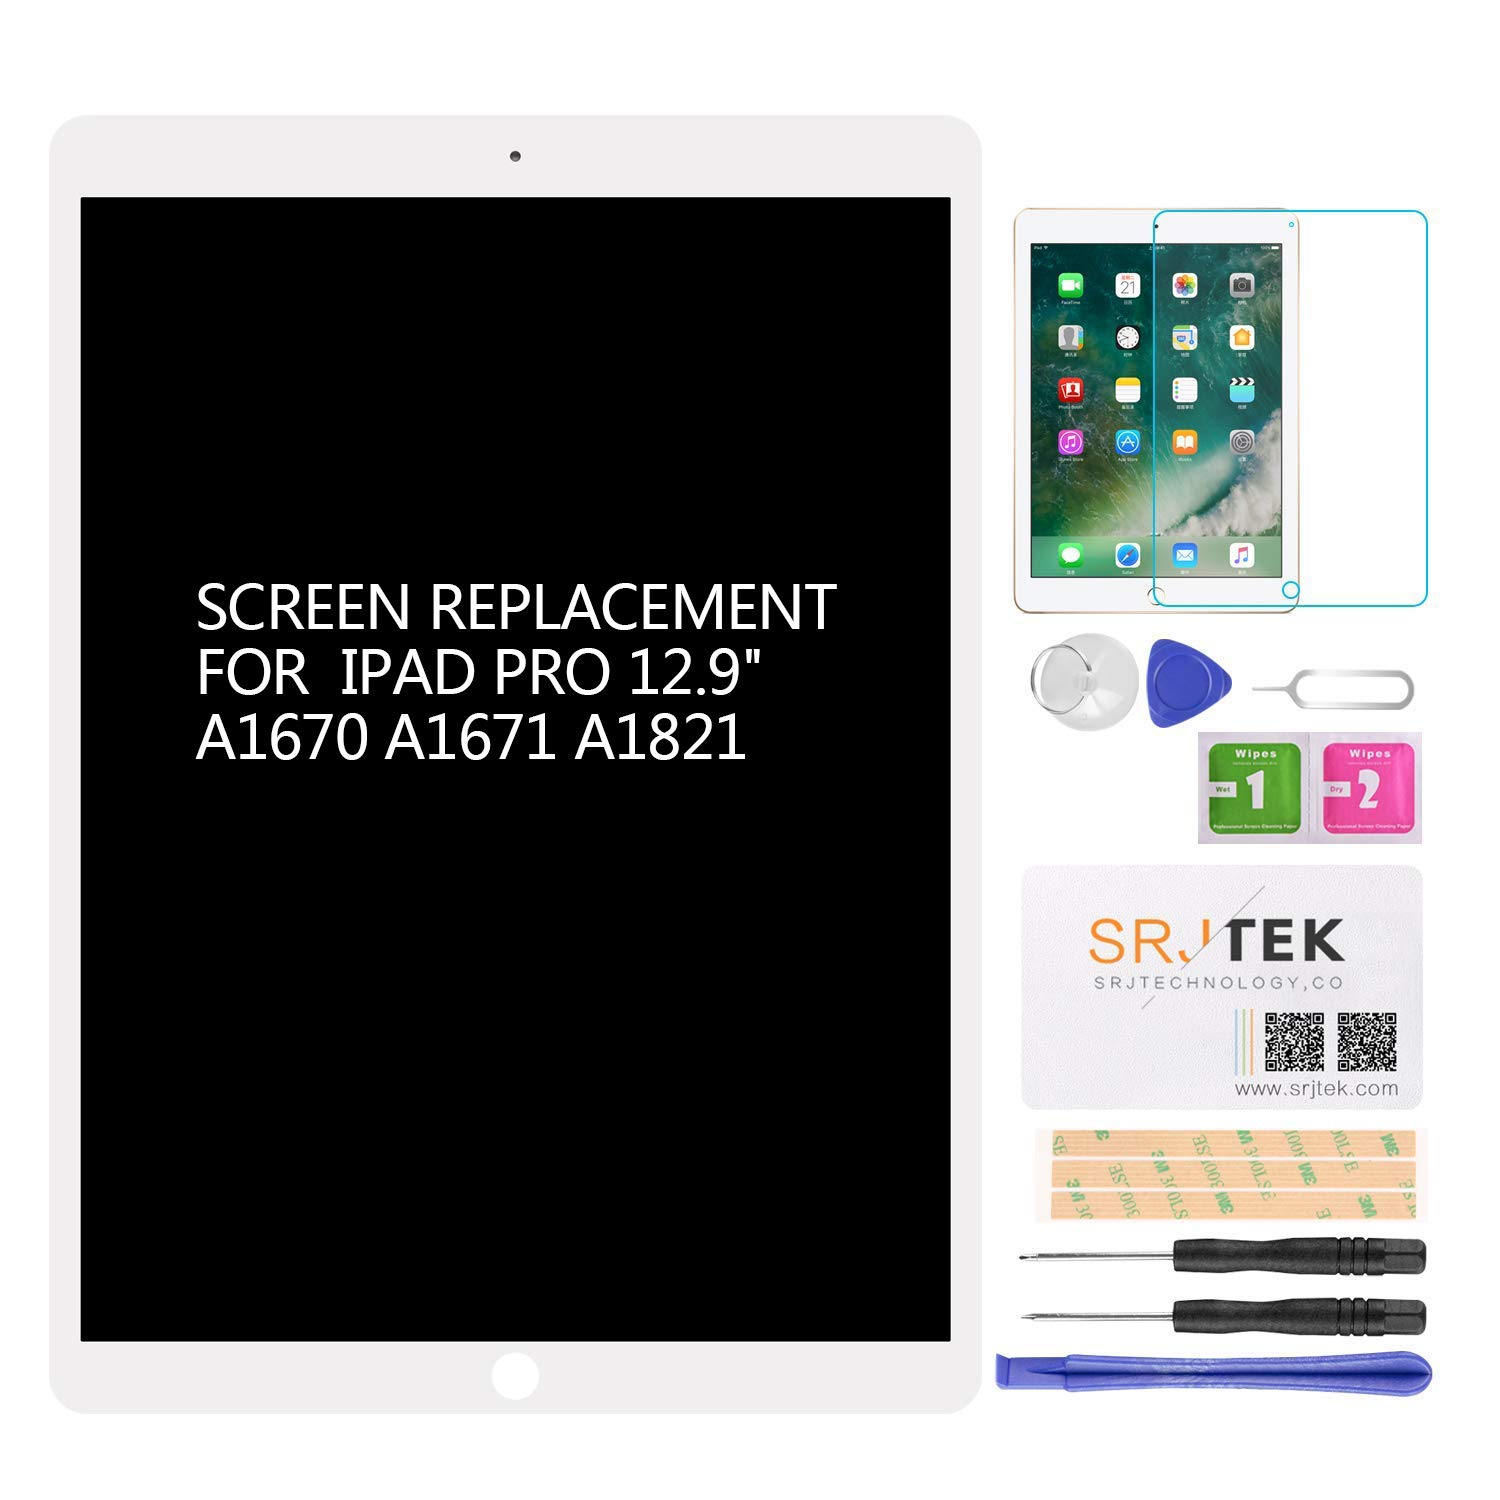 for iPad Pro 12.9 A1670 A1671 A1821 Screen Replacement LCD Display Touch Screen Digitizer + IC Connector PCB Flex Cable Assembly (2017) (White)